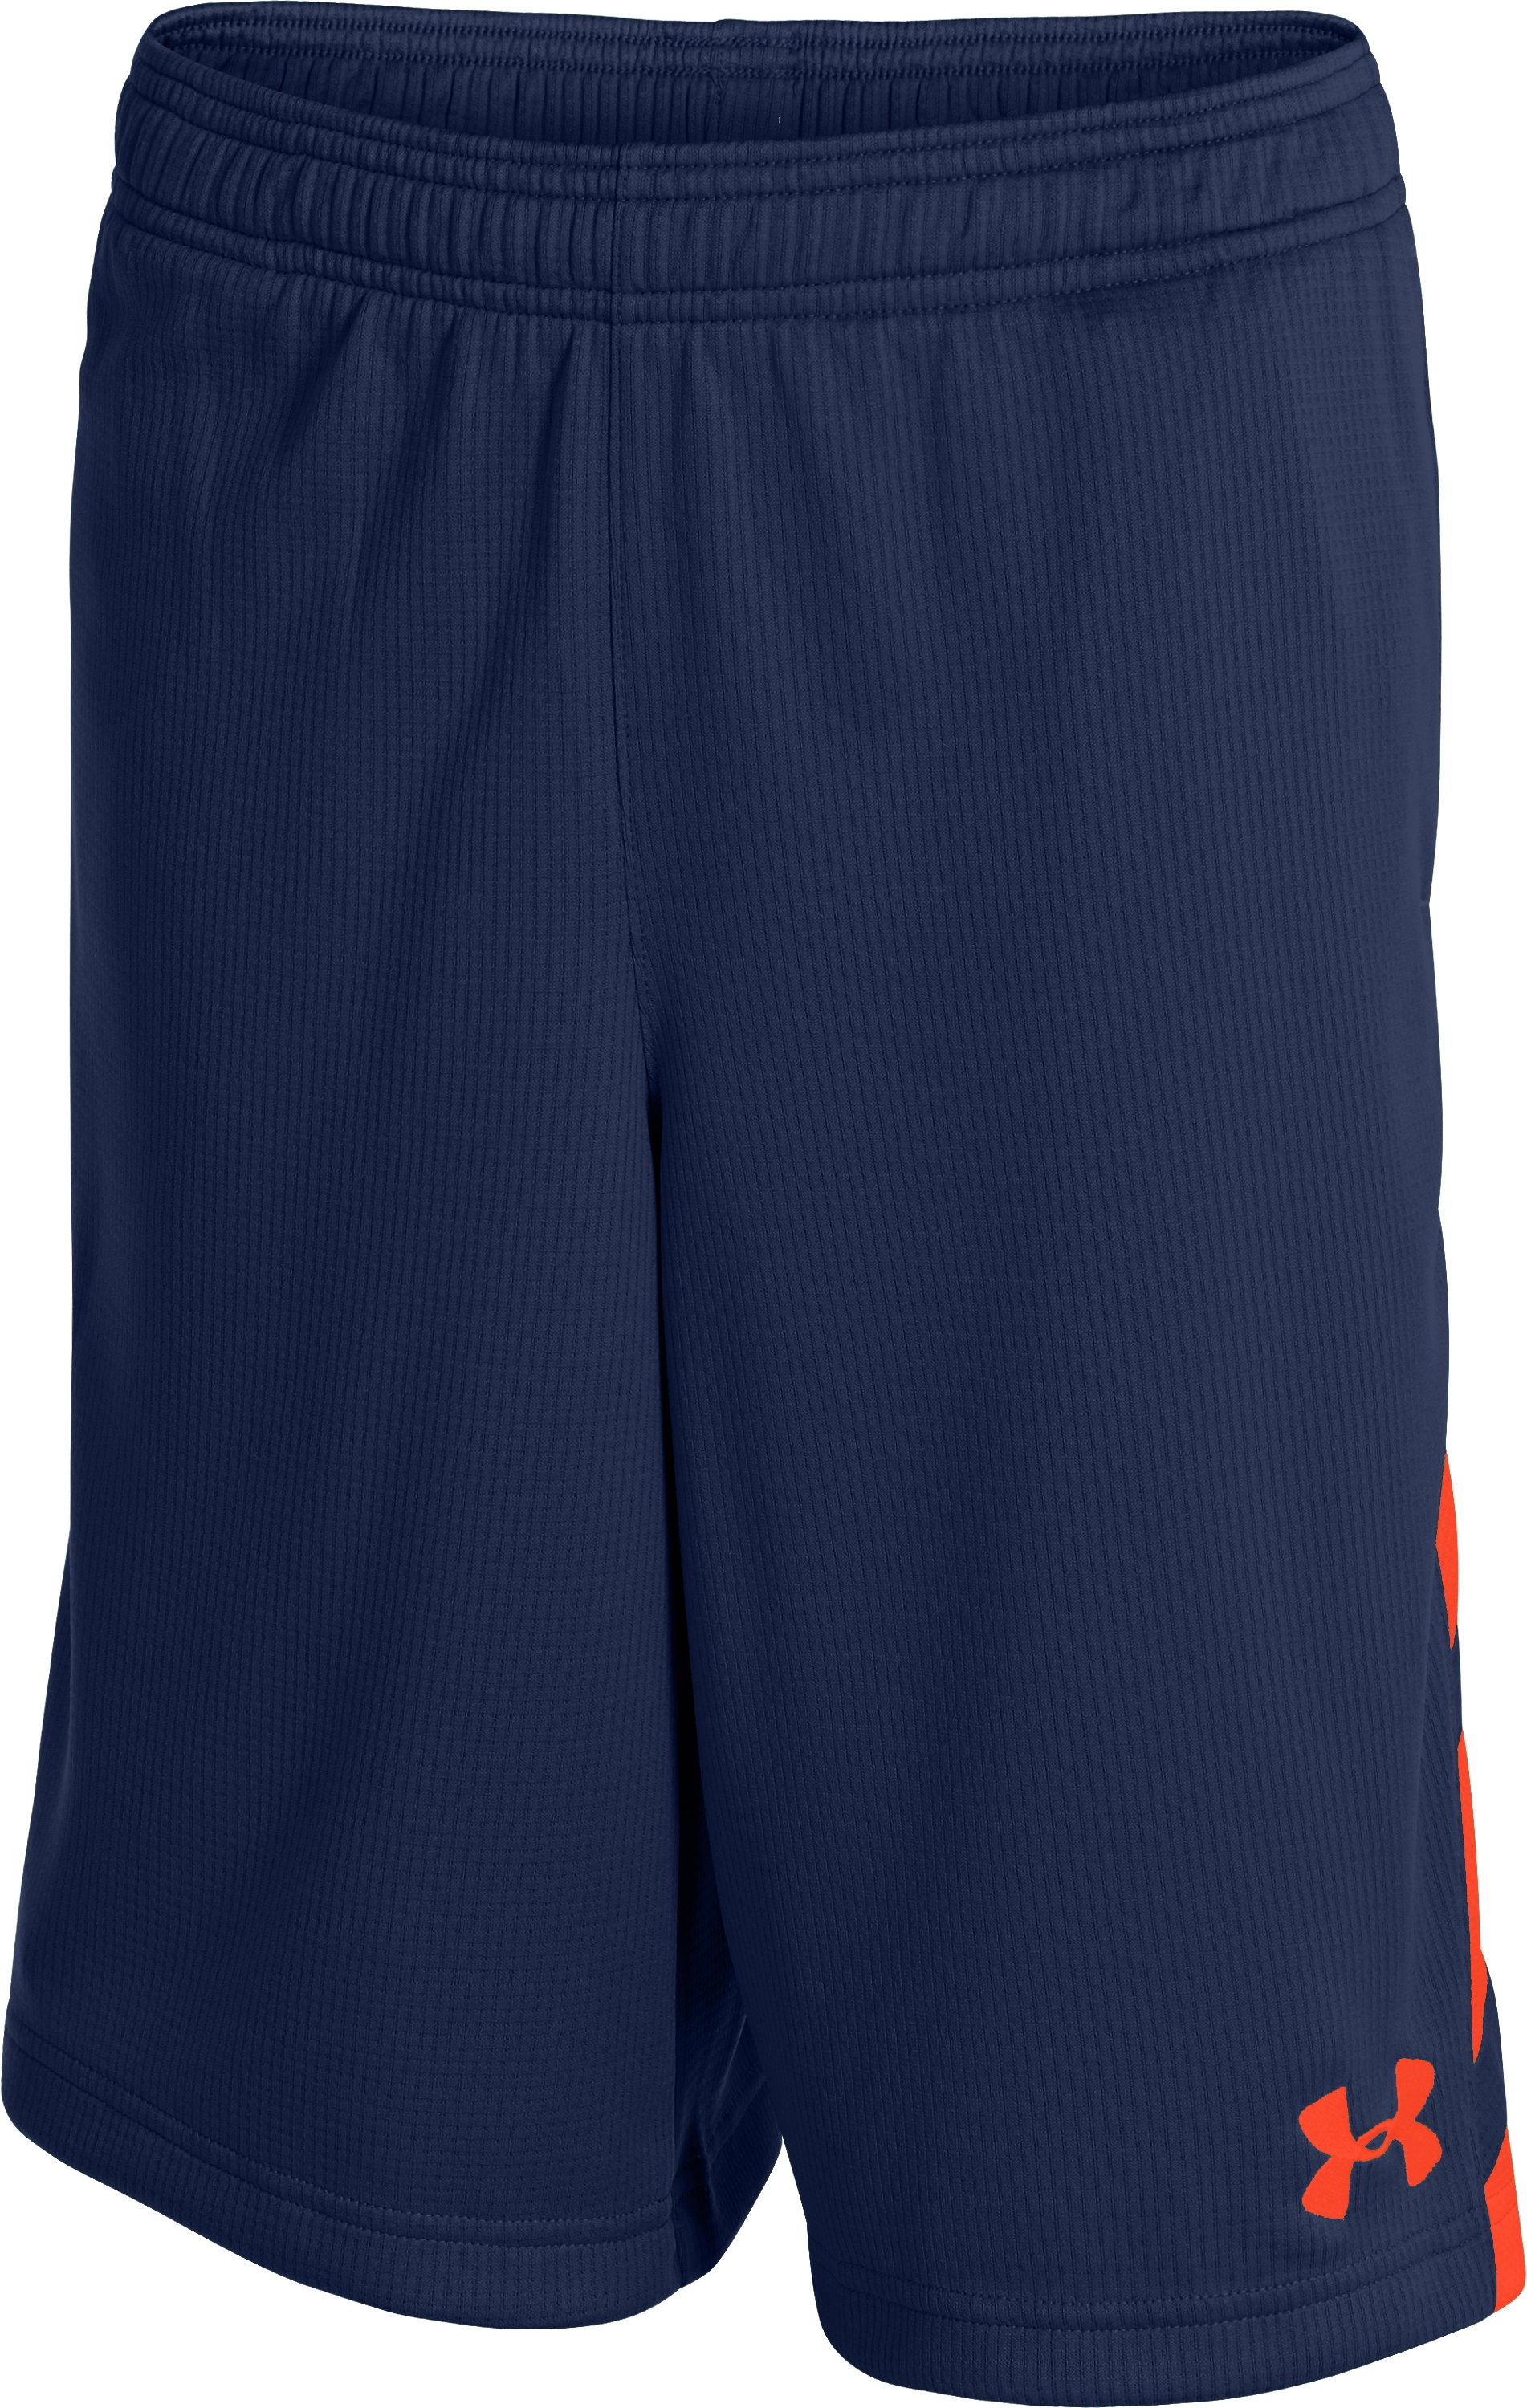 Boys' UA Big Timin Shorts, DEEP SPACE BLUE